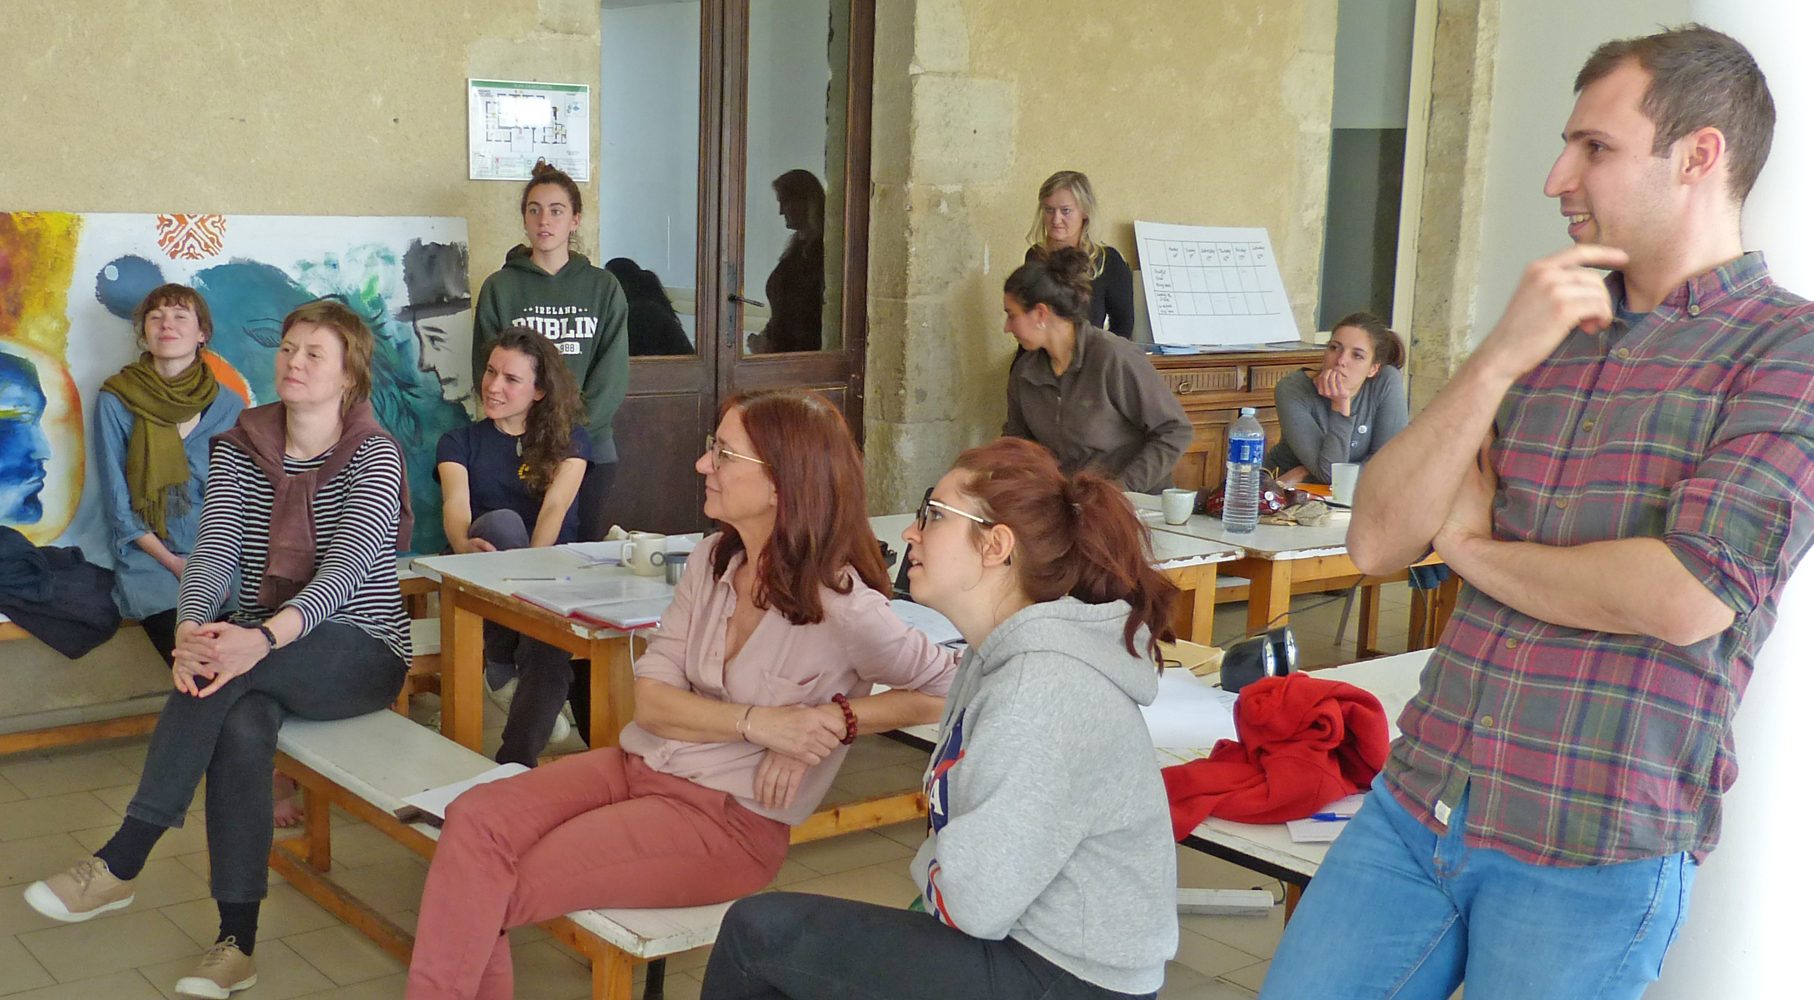 Presenting to the group during the workshop